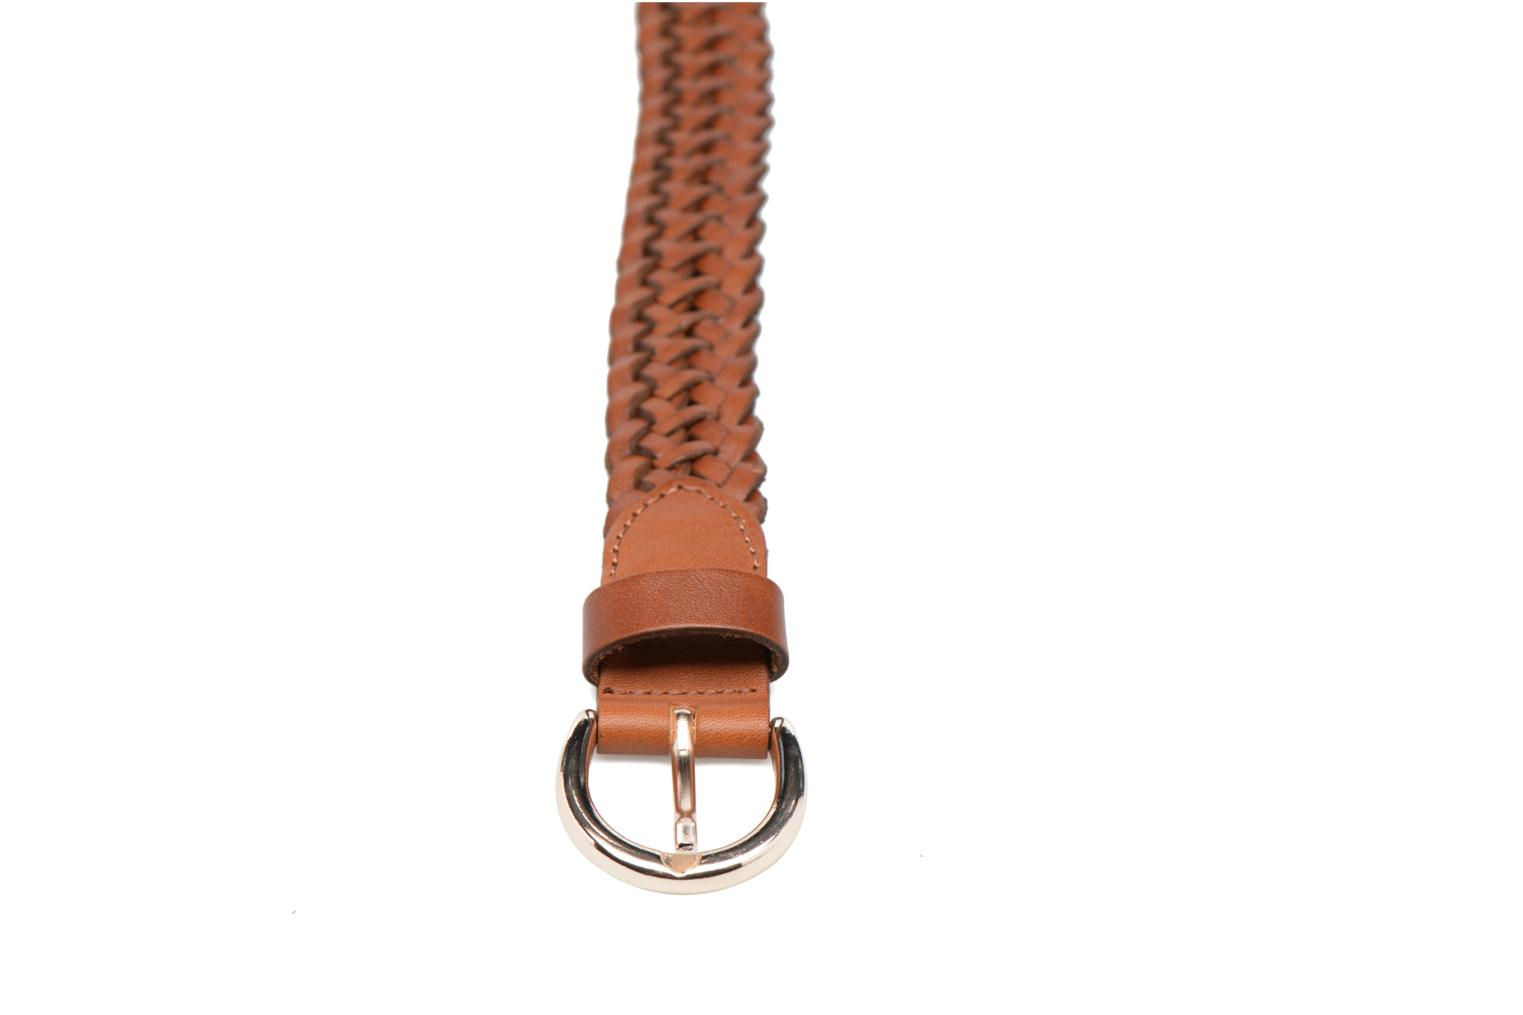 Loud Leather Jeans Belt Cognac